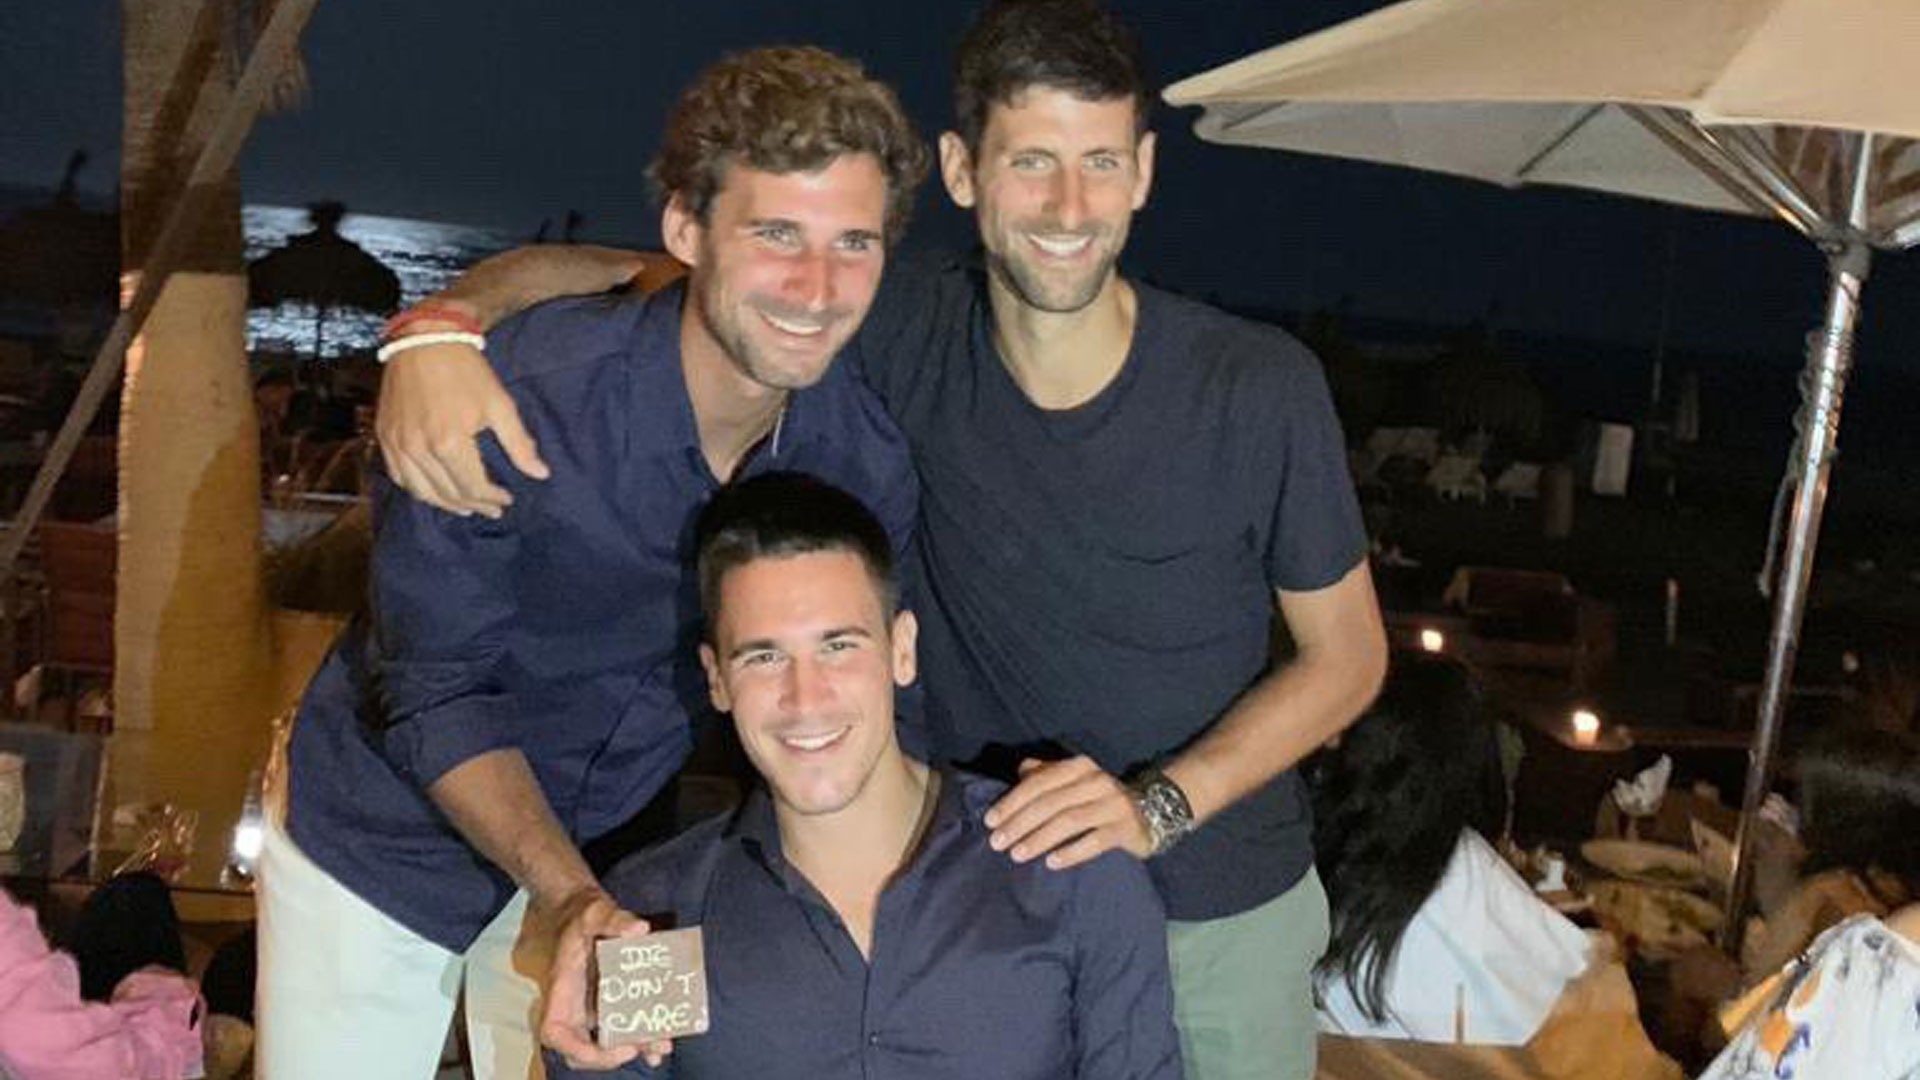 Novak Djokovic celebrates his brother's birthday in July 2019